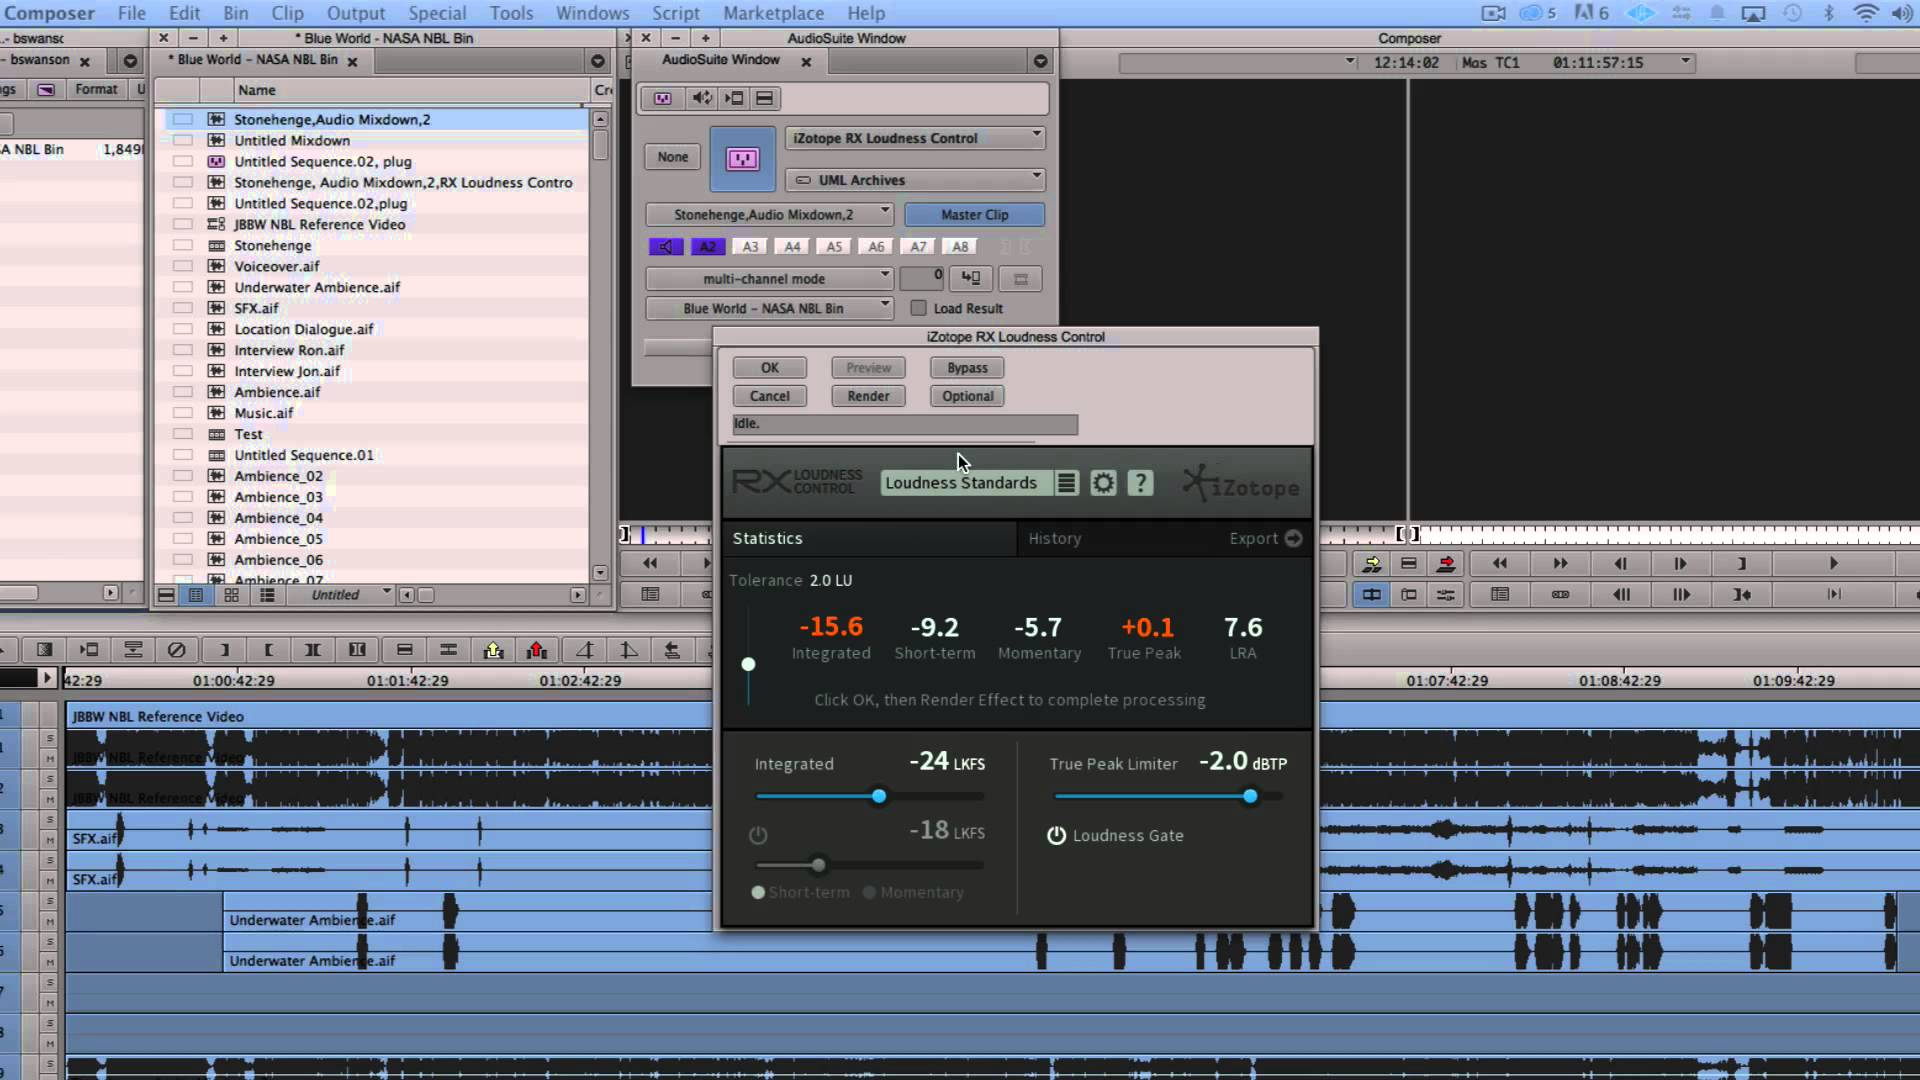 Using RX Loudness Control in Avid Media Composer